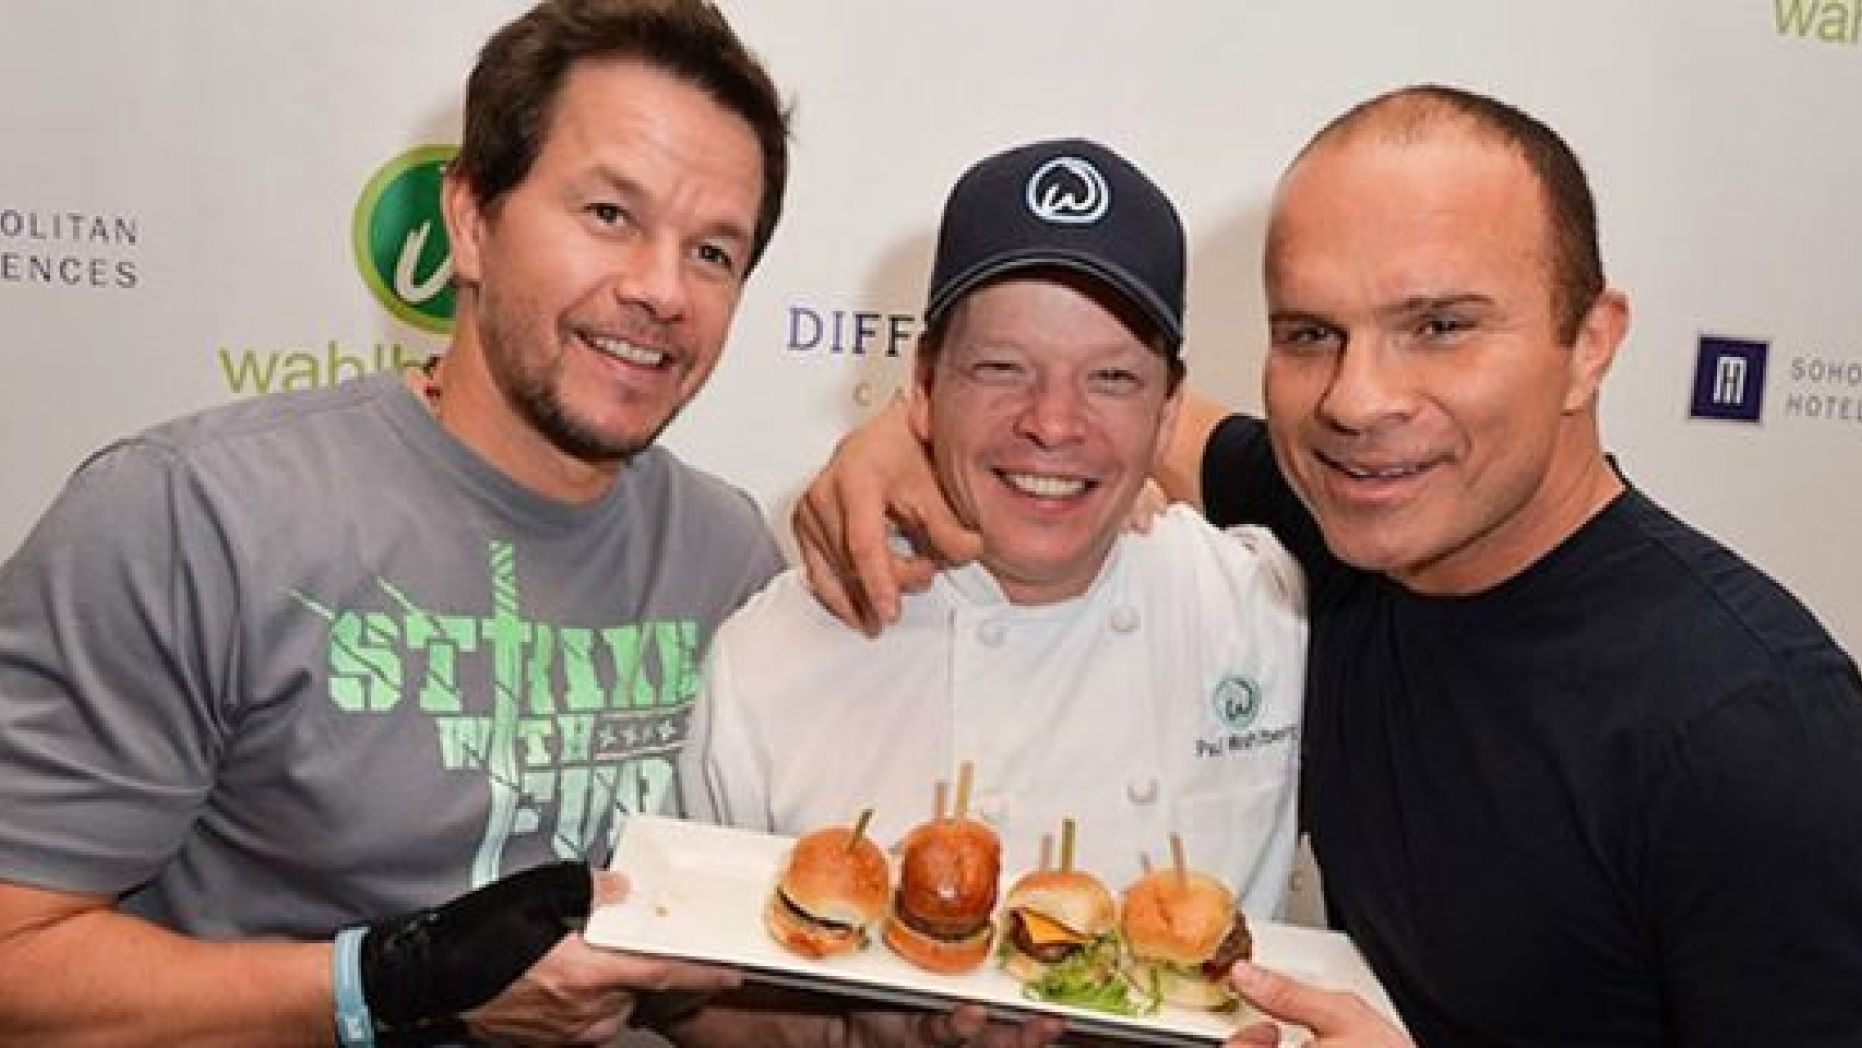 Wahlberg Brothers Burger Chain Is Making Their Way To Texas